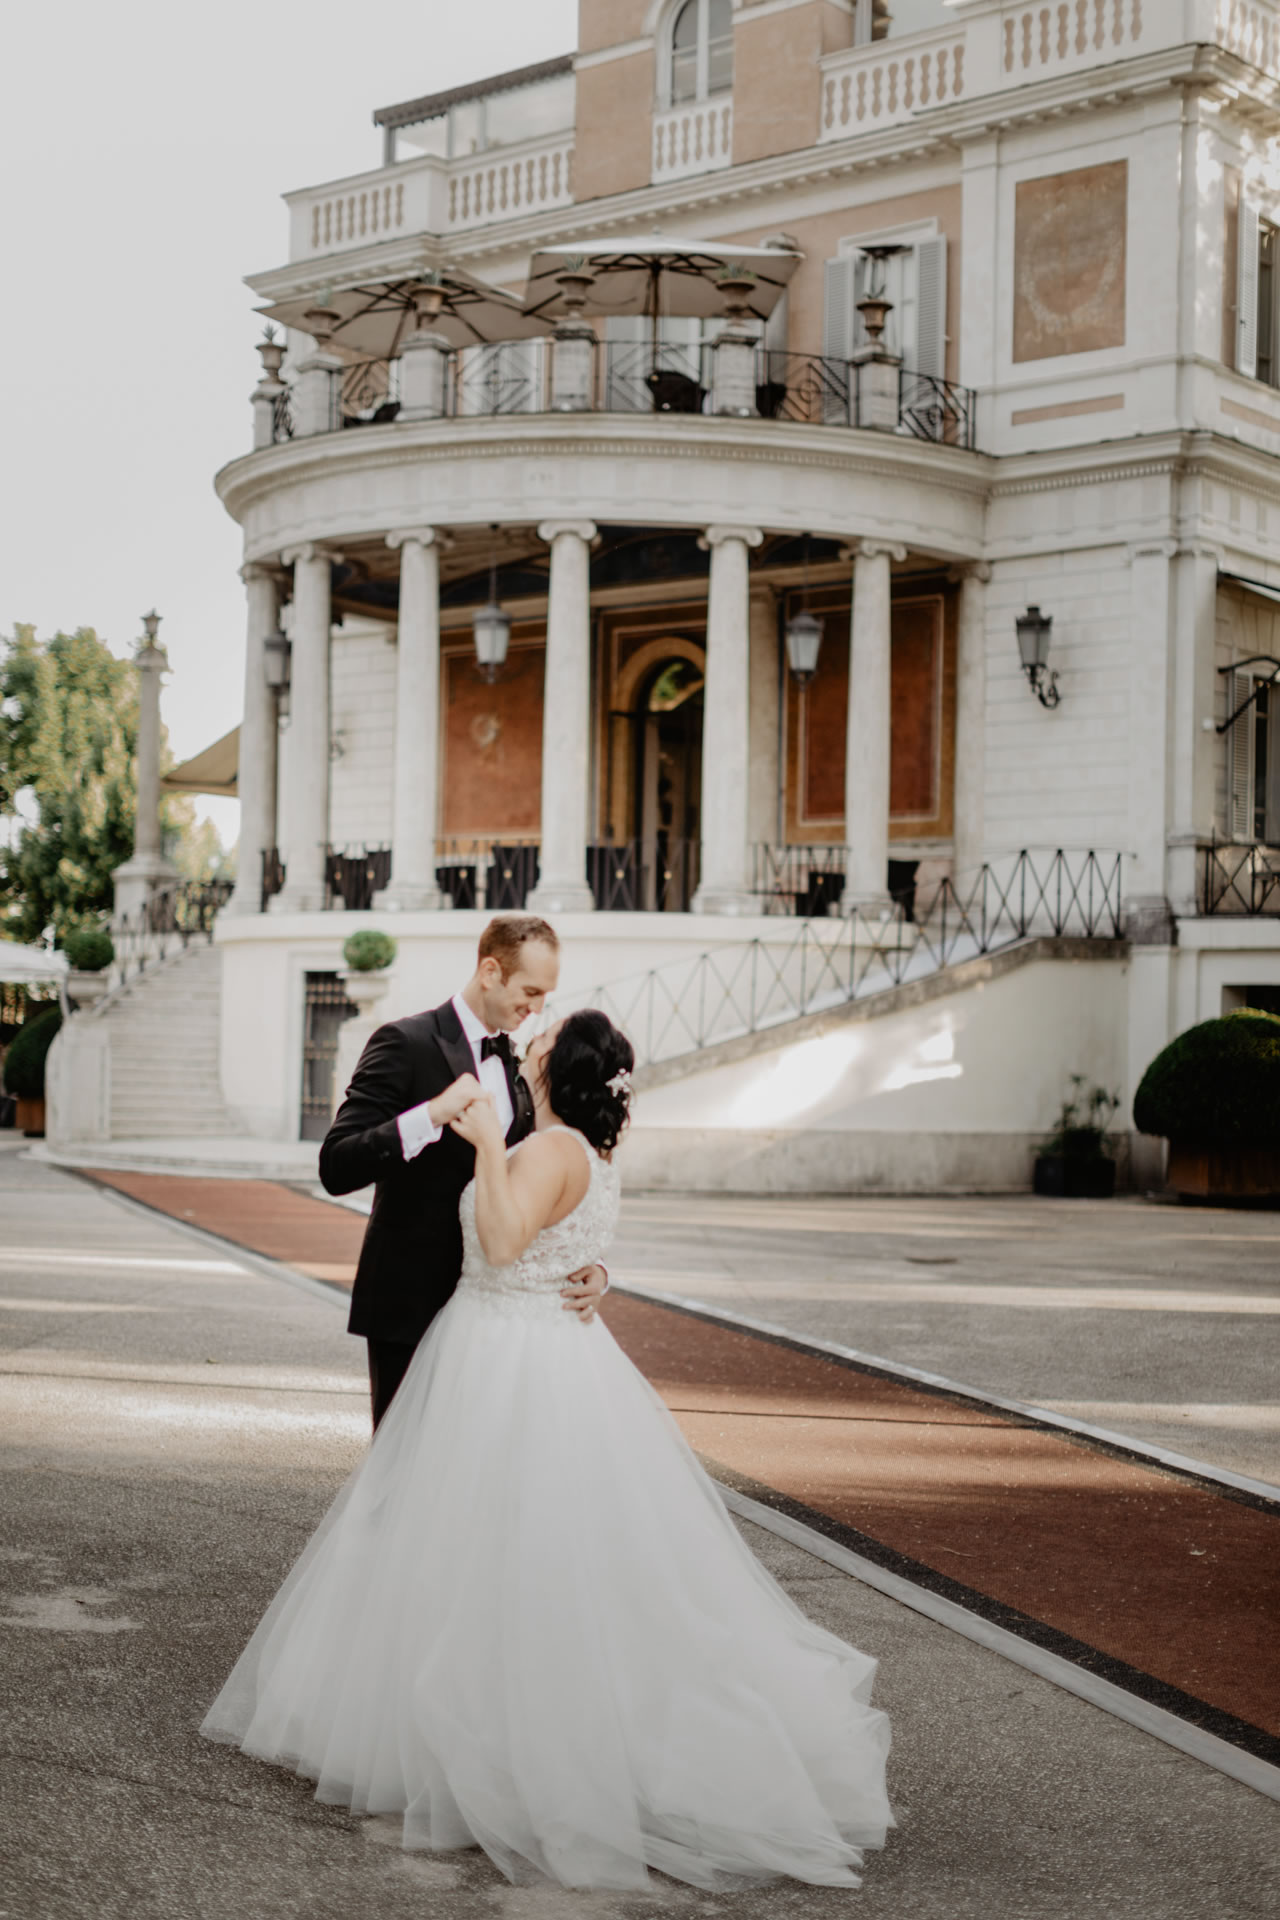 A breath-taking wedding in Rome, the eternal city :: Luxury wedding photography - 28